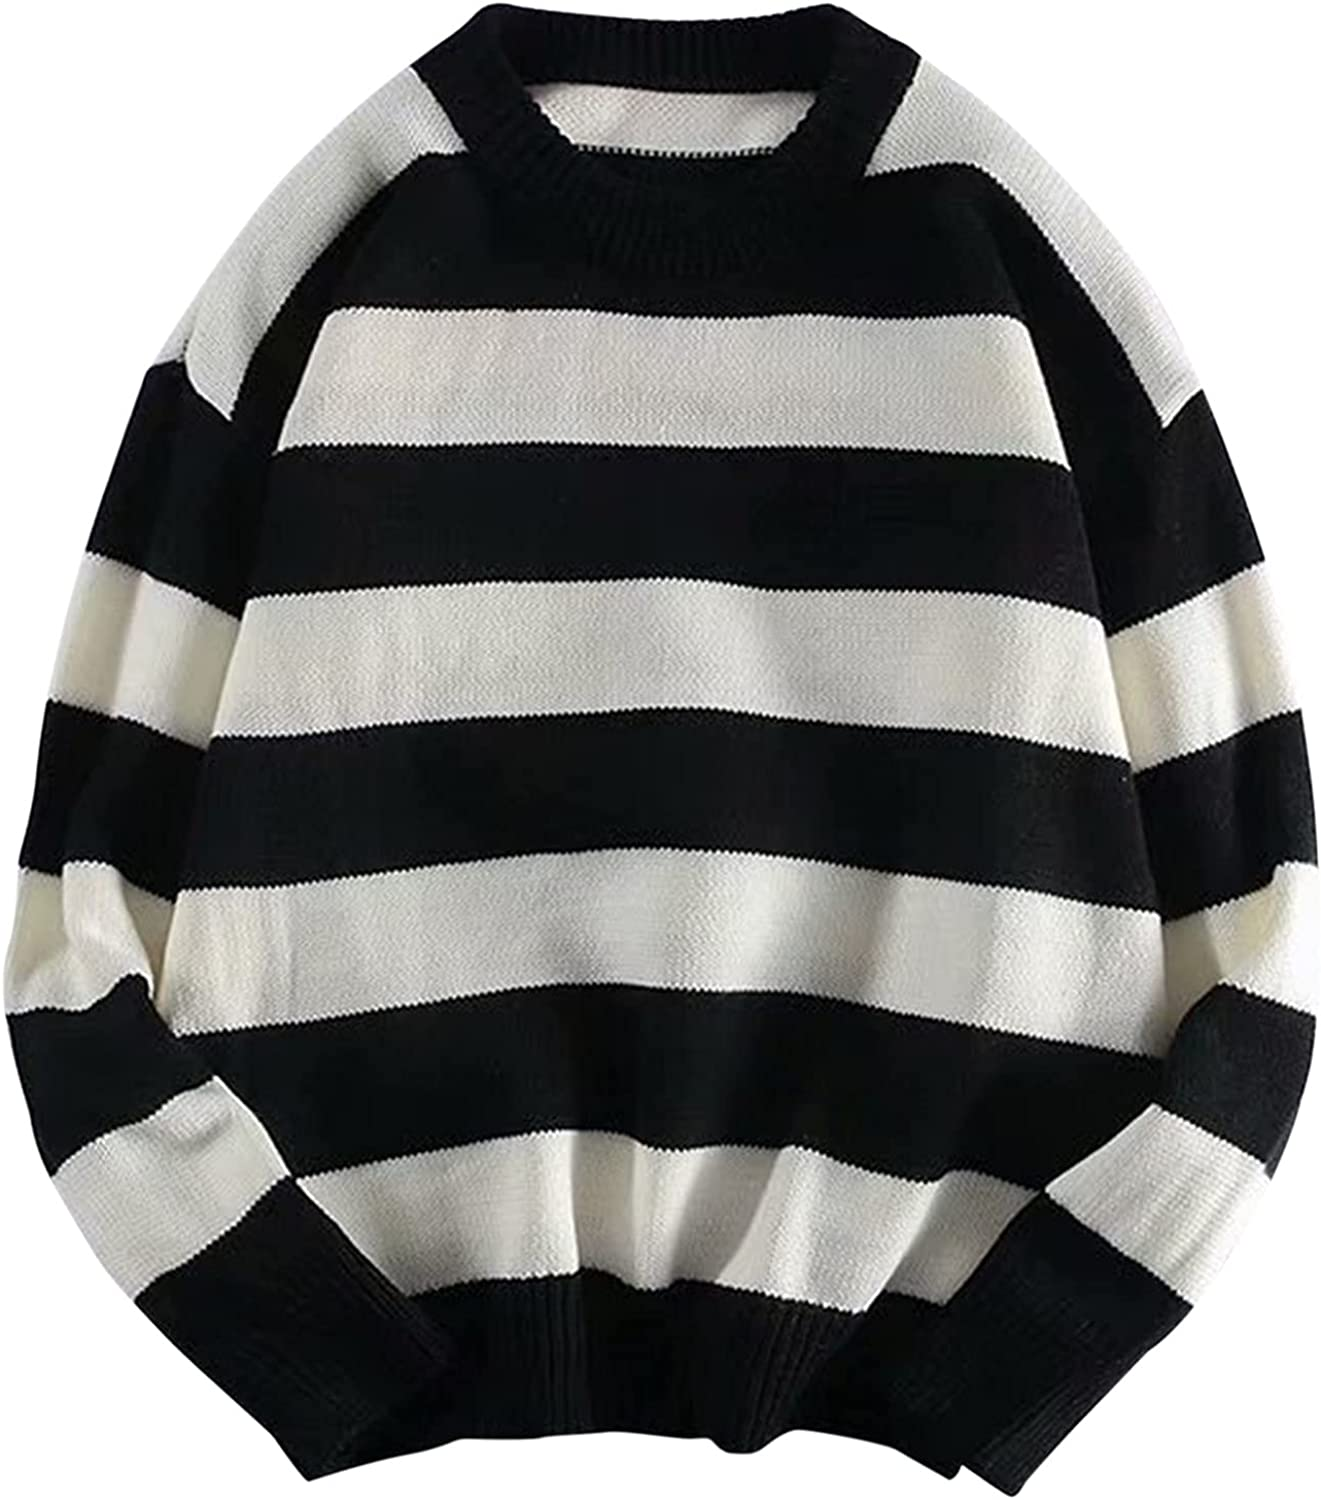 XXBR Pullover Sweater for Mens, Fall Long Sleeve Striped Patchwork Workout Sports Bottoming Casual Crewneck Jumper Tops